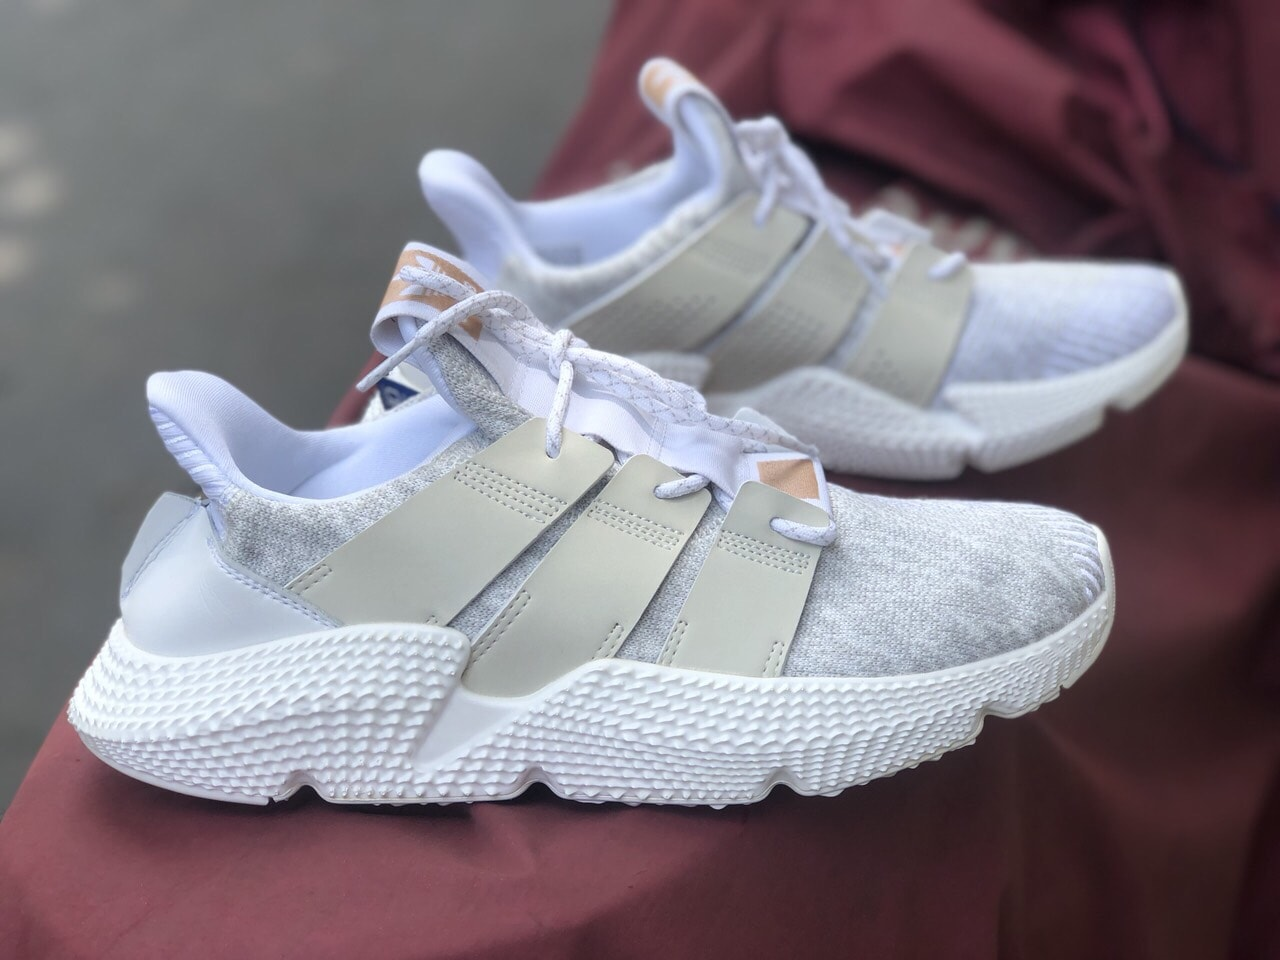 giày thể thao adidas prophere trắng hồng